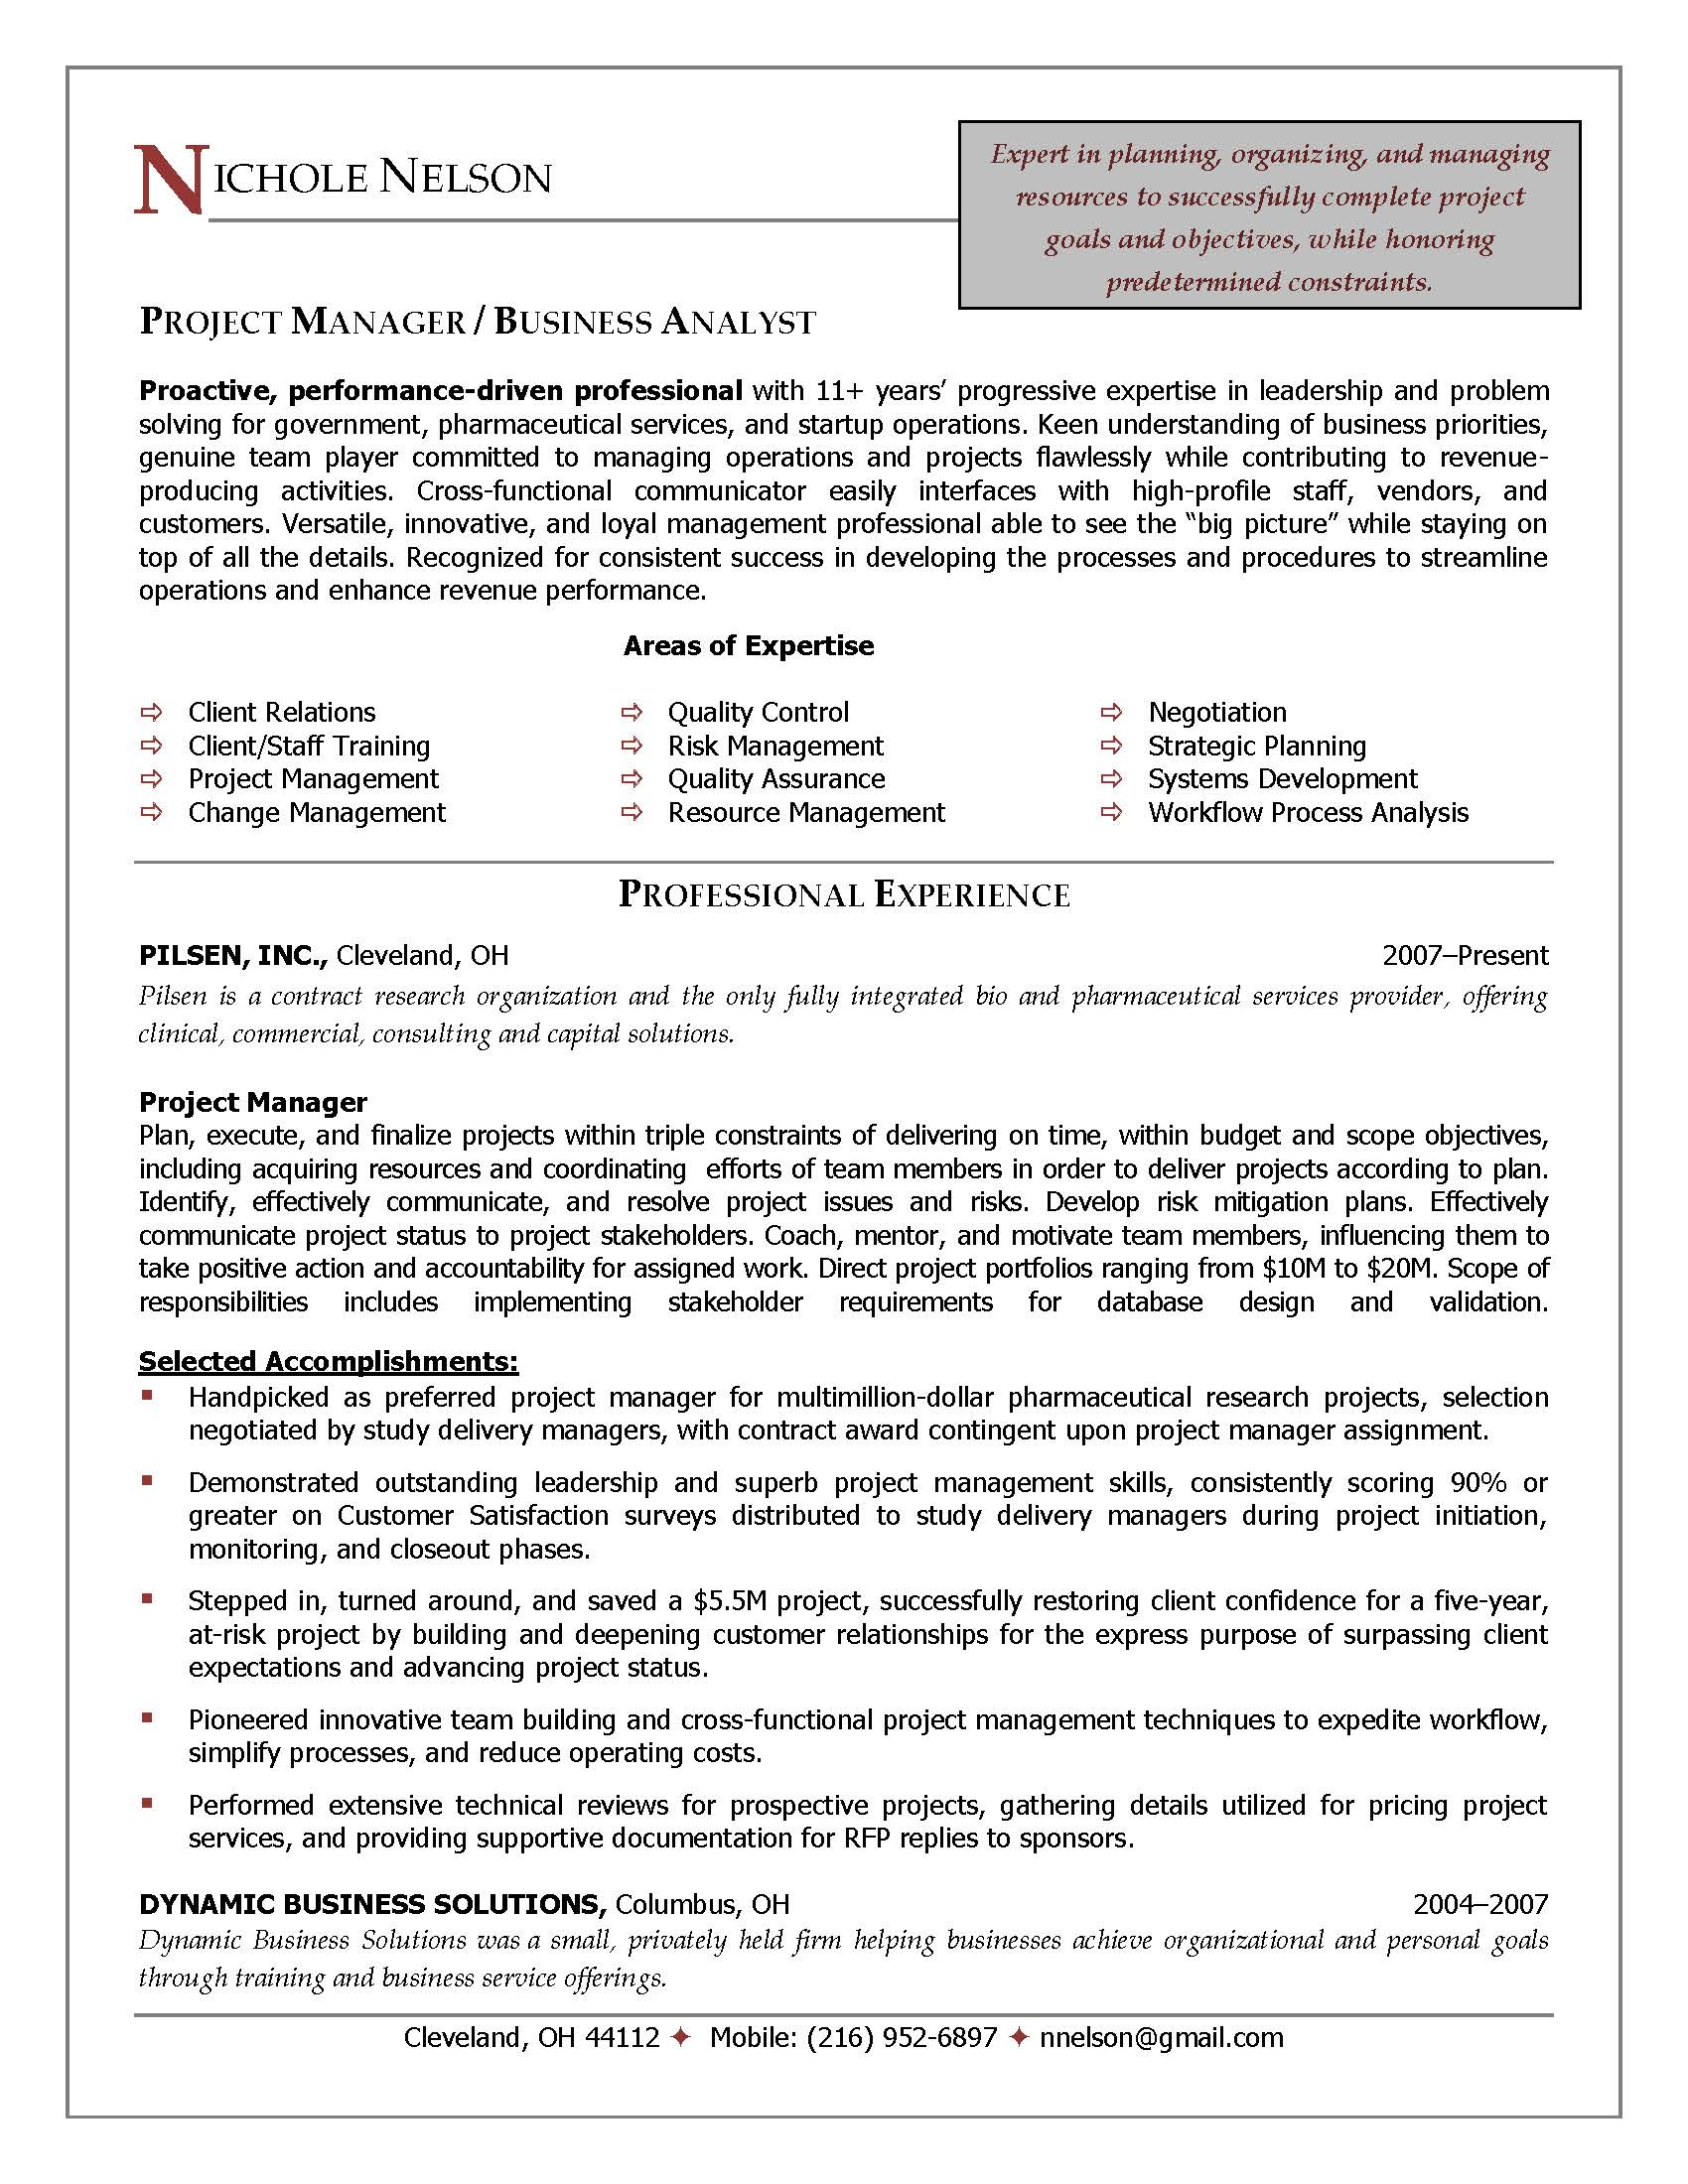 construction manager cv template building industry references pinterest co founder general manager automotive div resume samples - Resume Summary Examples It Project Manager